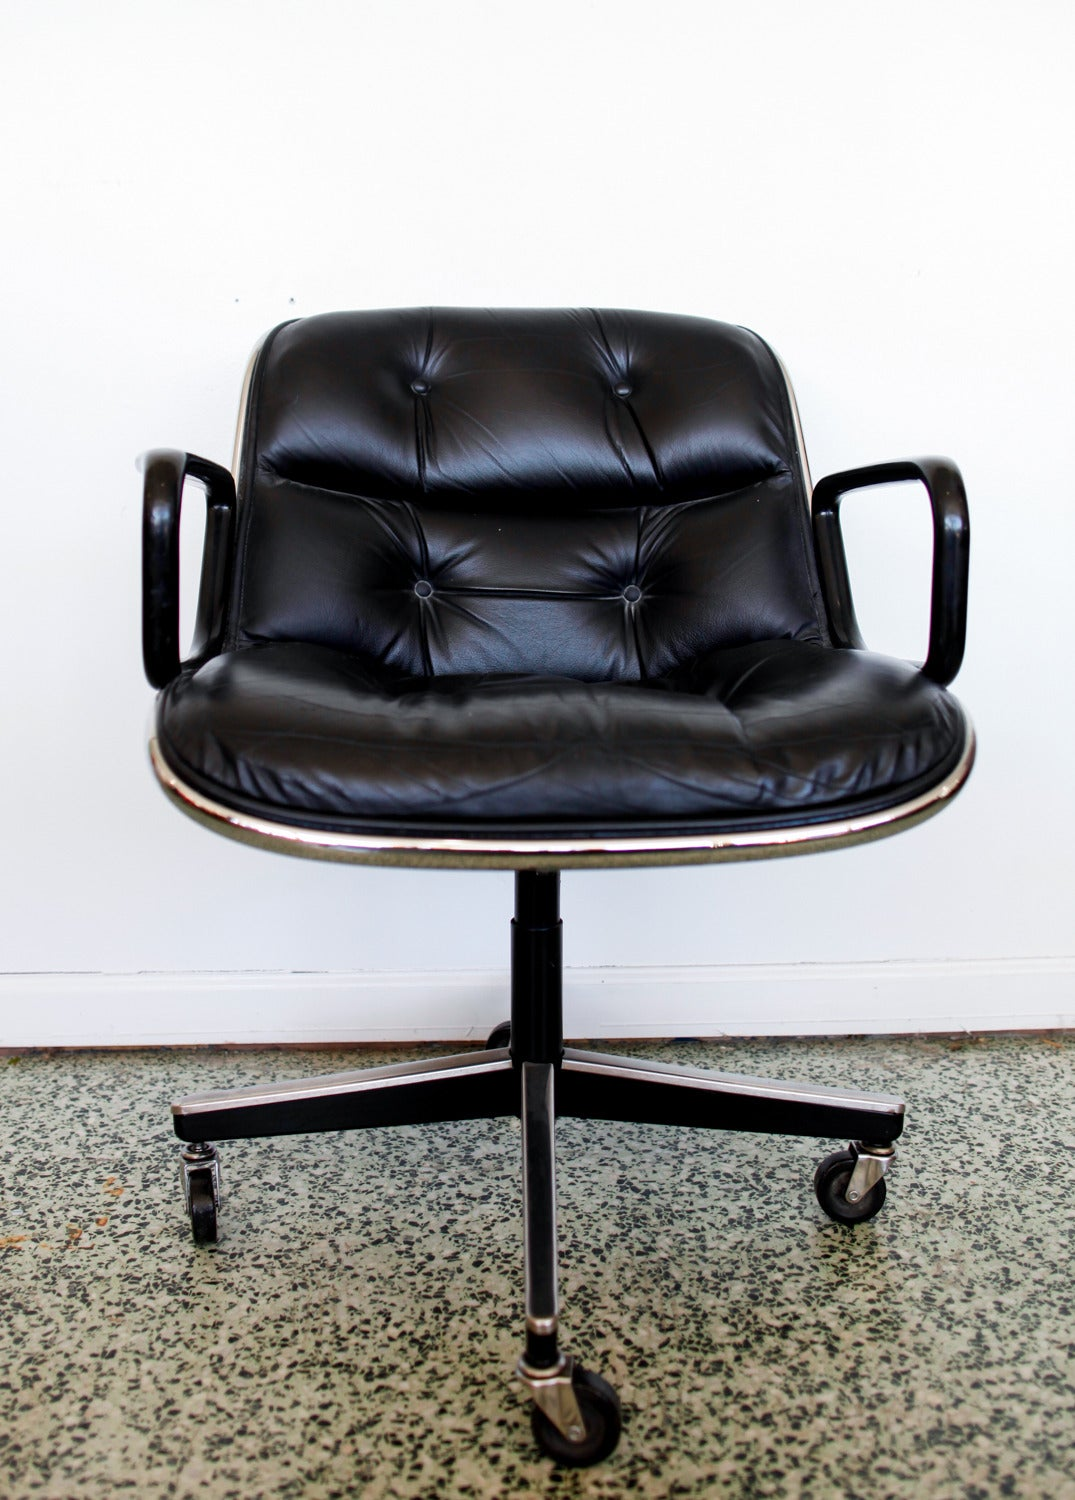 Knoll Pollock Chair Black Executive Chair By Charles Pollock For Knoll At 1stdibs